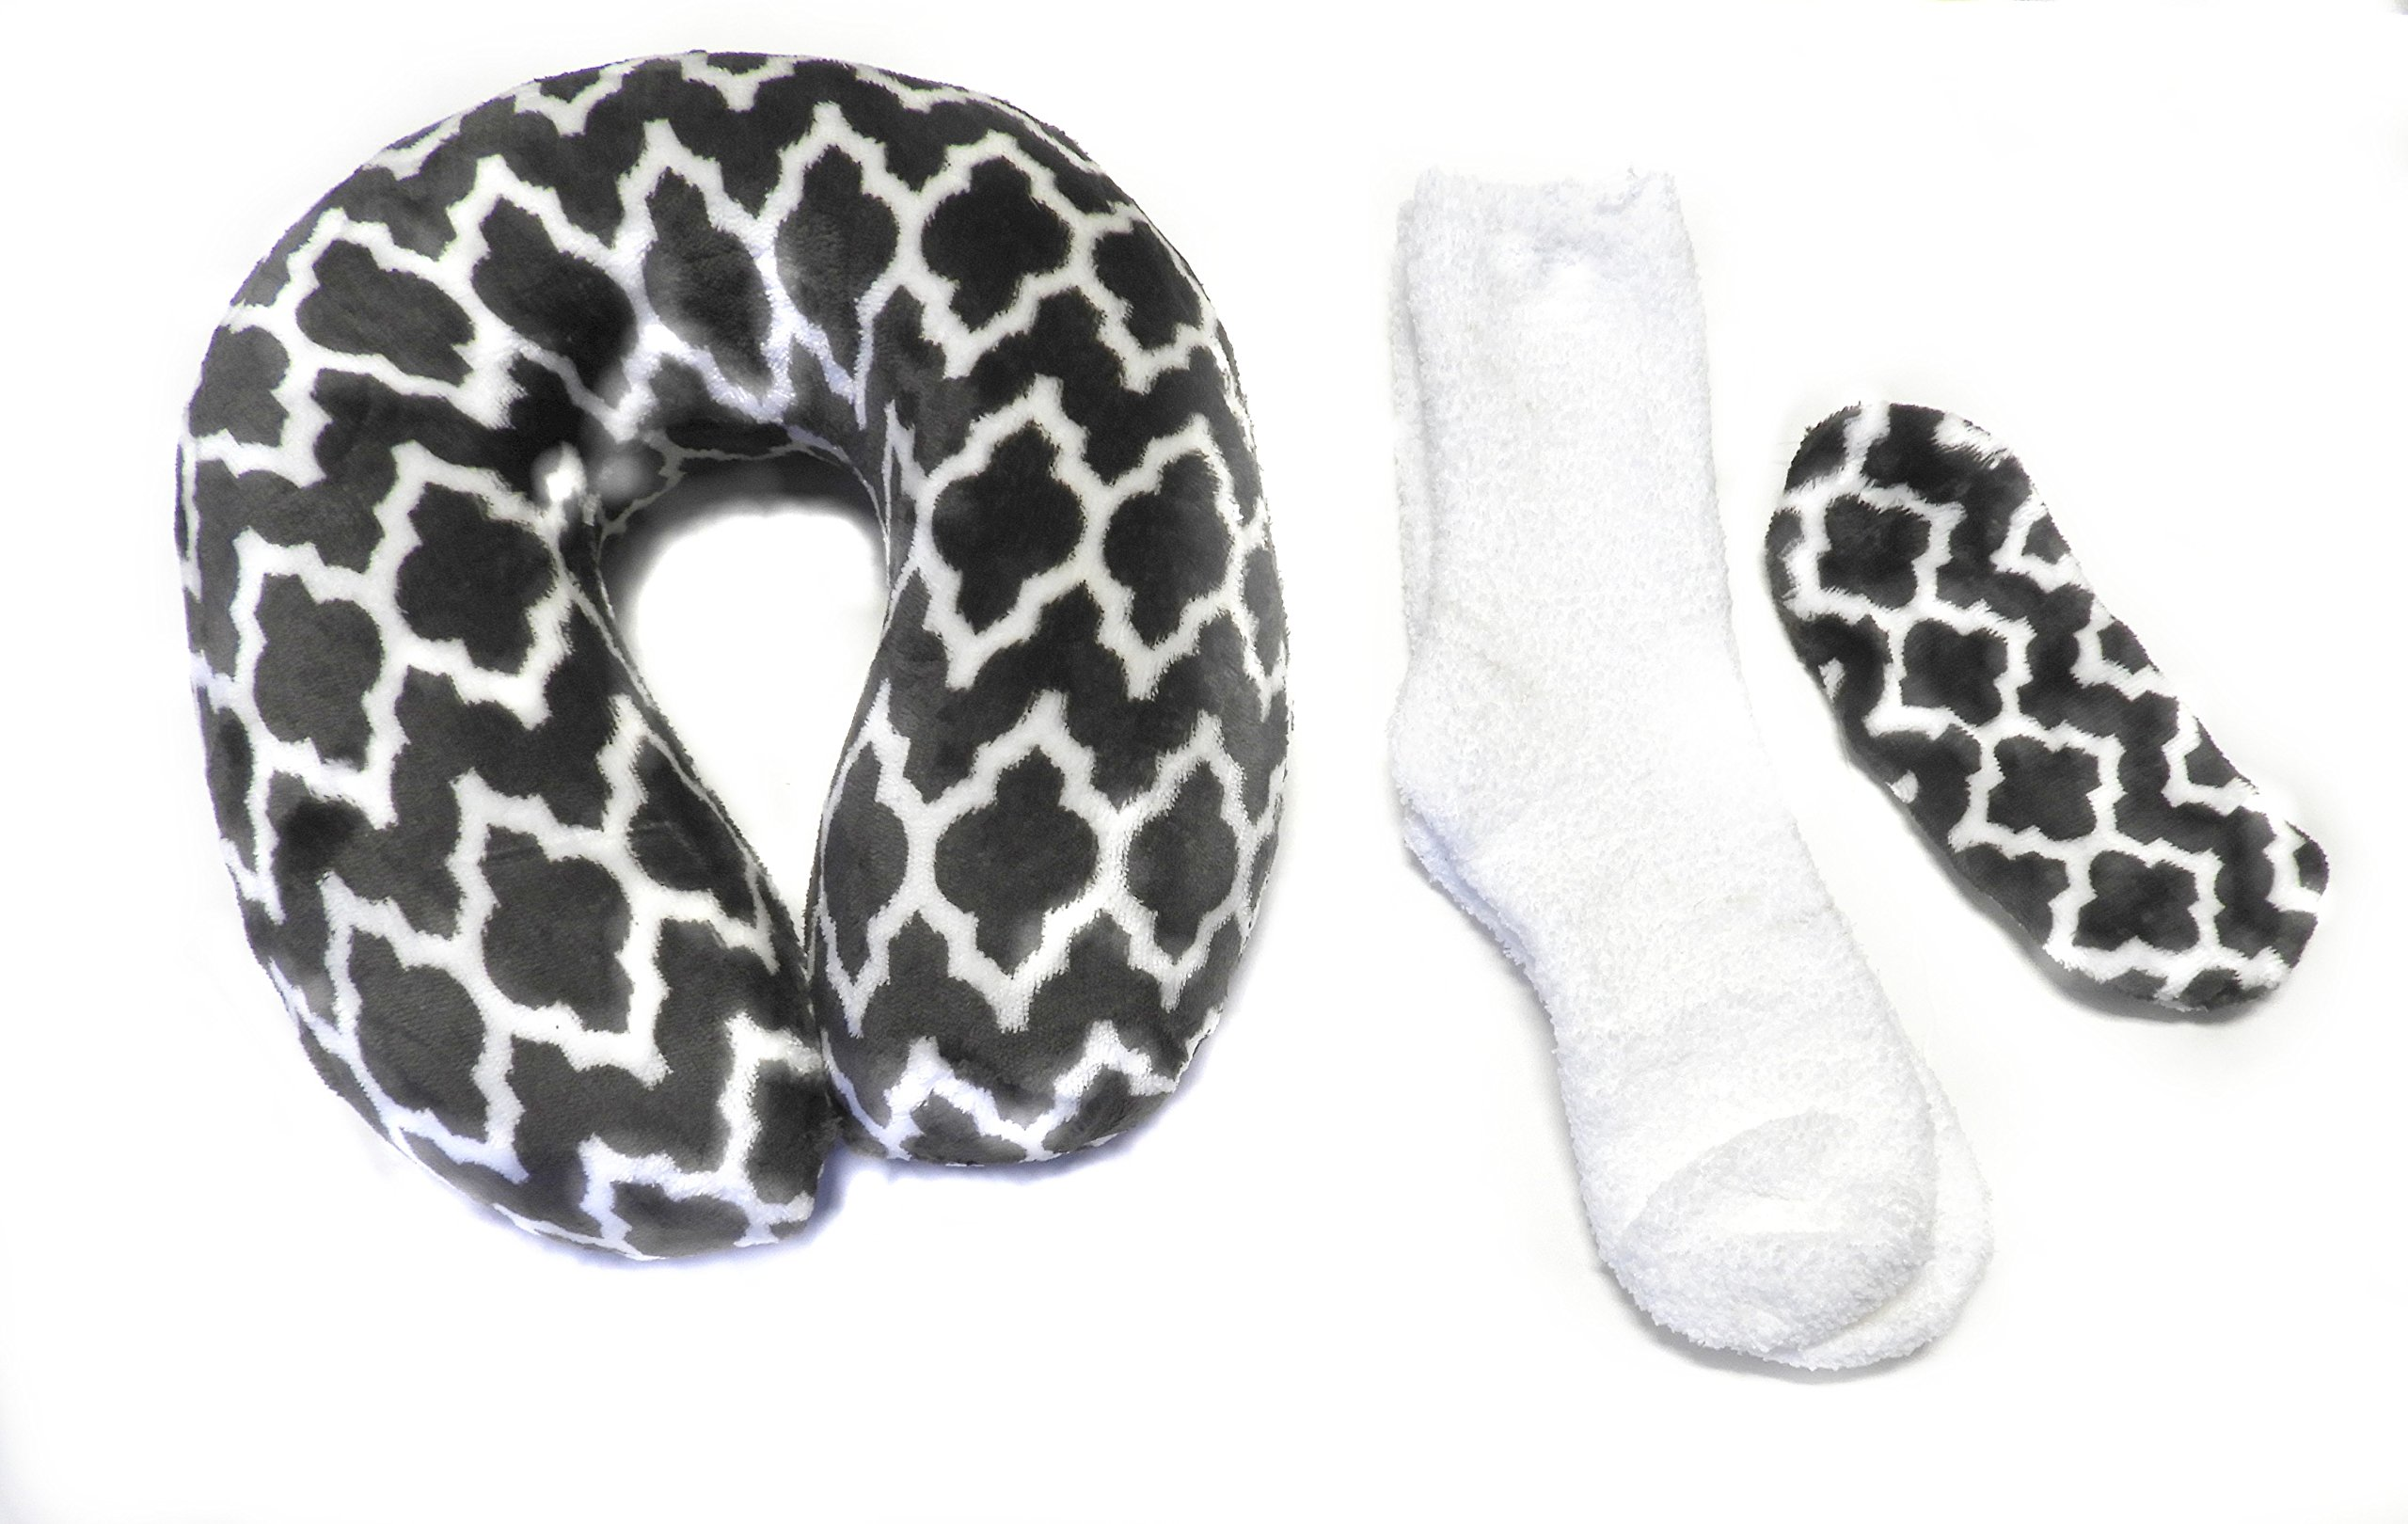 DINY Home & Style 3 Piece Plush Neck Travel Pillow Set Memory Foam with Cozy Socks and Velour Eye Mask (Grey & White)